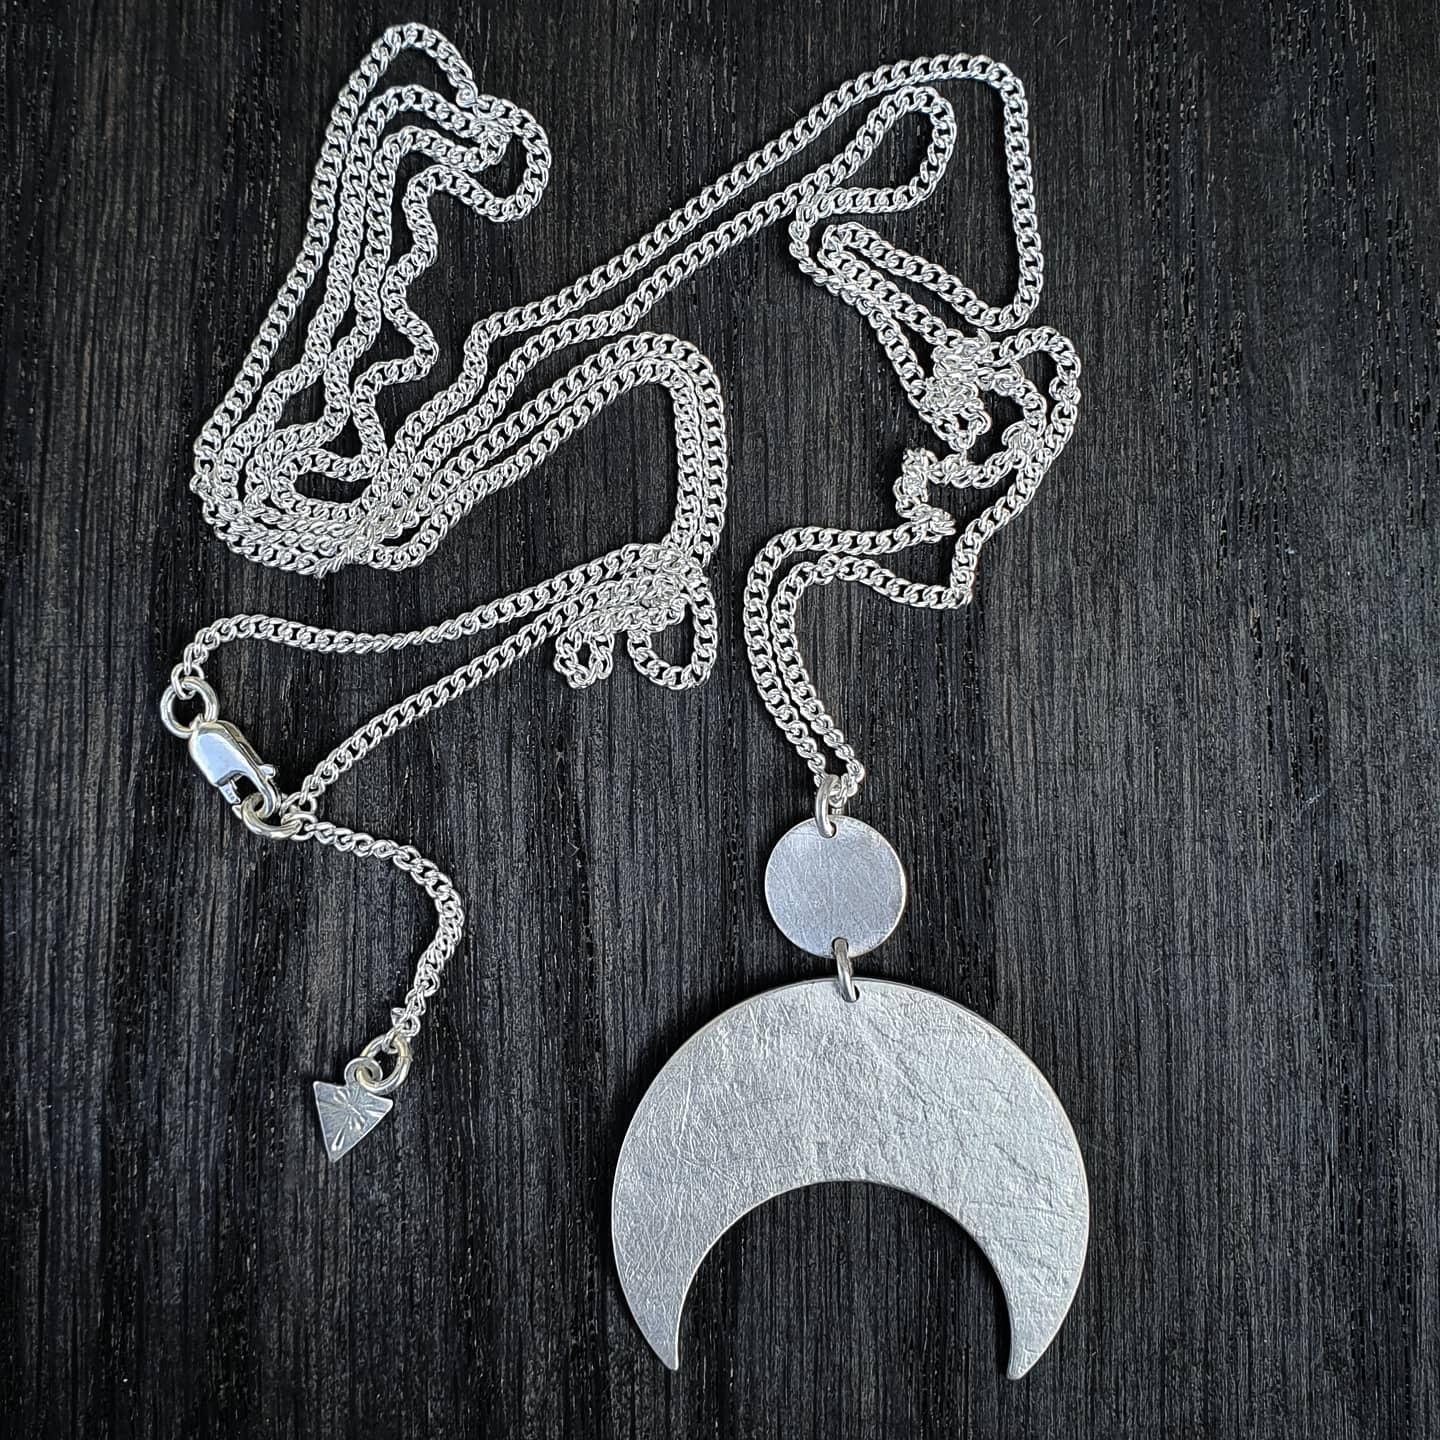 Emily Eliza Arlotte Handcrafted Fine Jewellery - Handmade Australian Tasmanian Jewelry Ethically Made Sustainable Recycled Sterling Silver Charm Necklace Half Moon Crescent Celestial Goddess Pendant Contemporary Dainty Statement Unique Trendy Modern Necklace Boho Bohemian Gypsy Witchy Alternative Style Festival Fashion